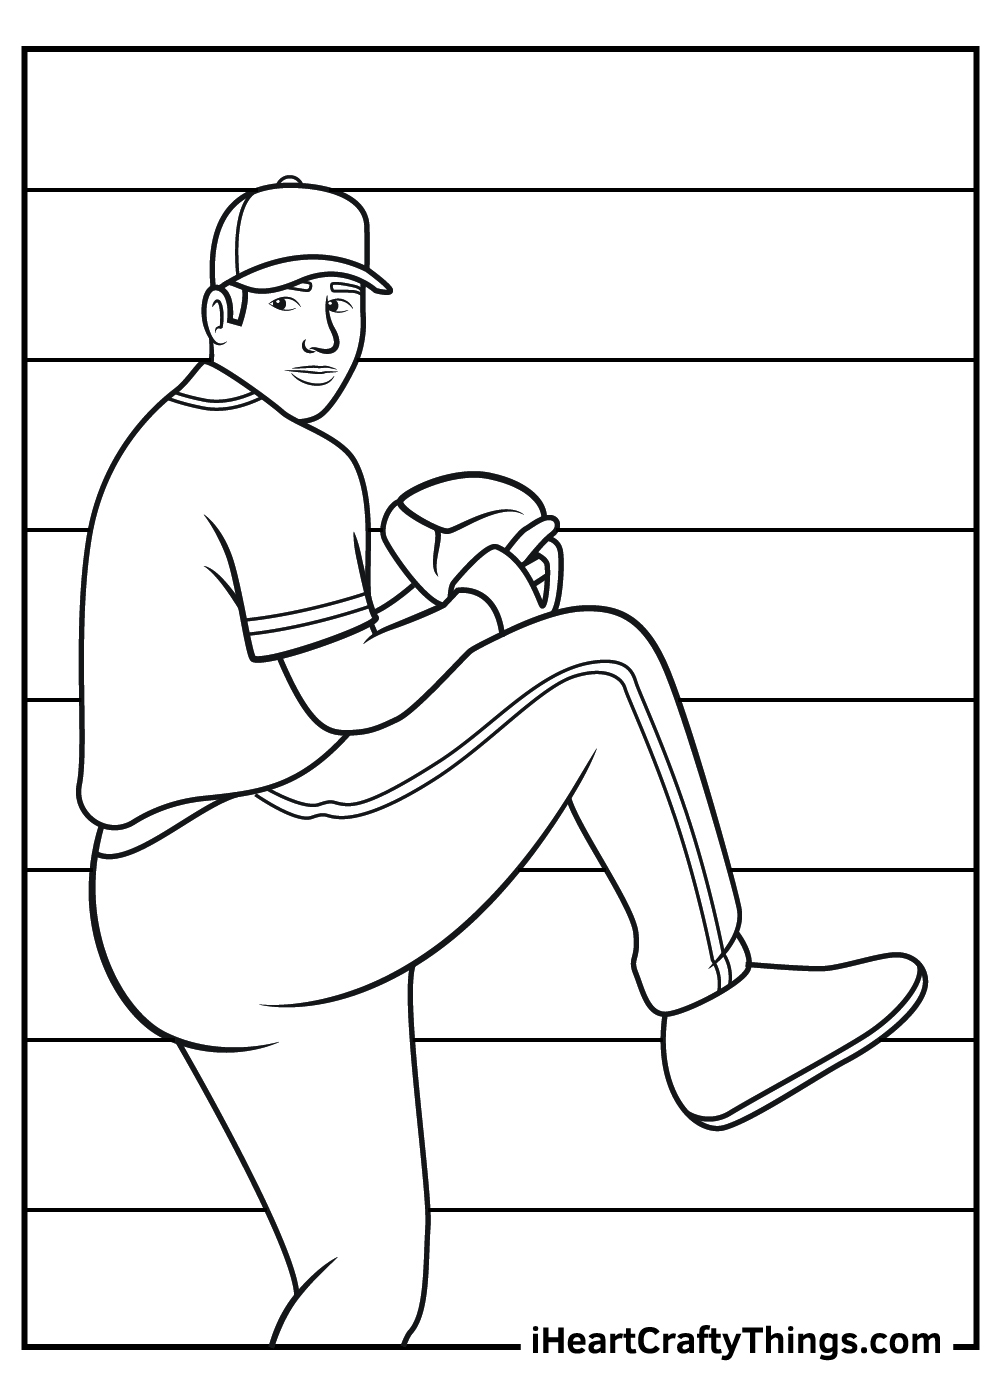 baseball player coloring pages free download